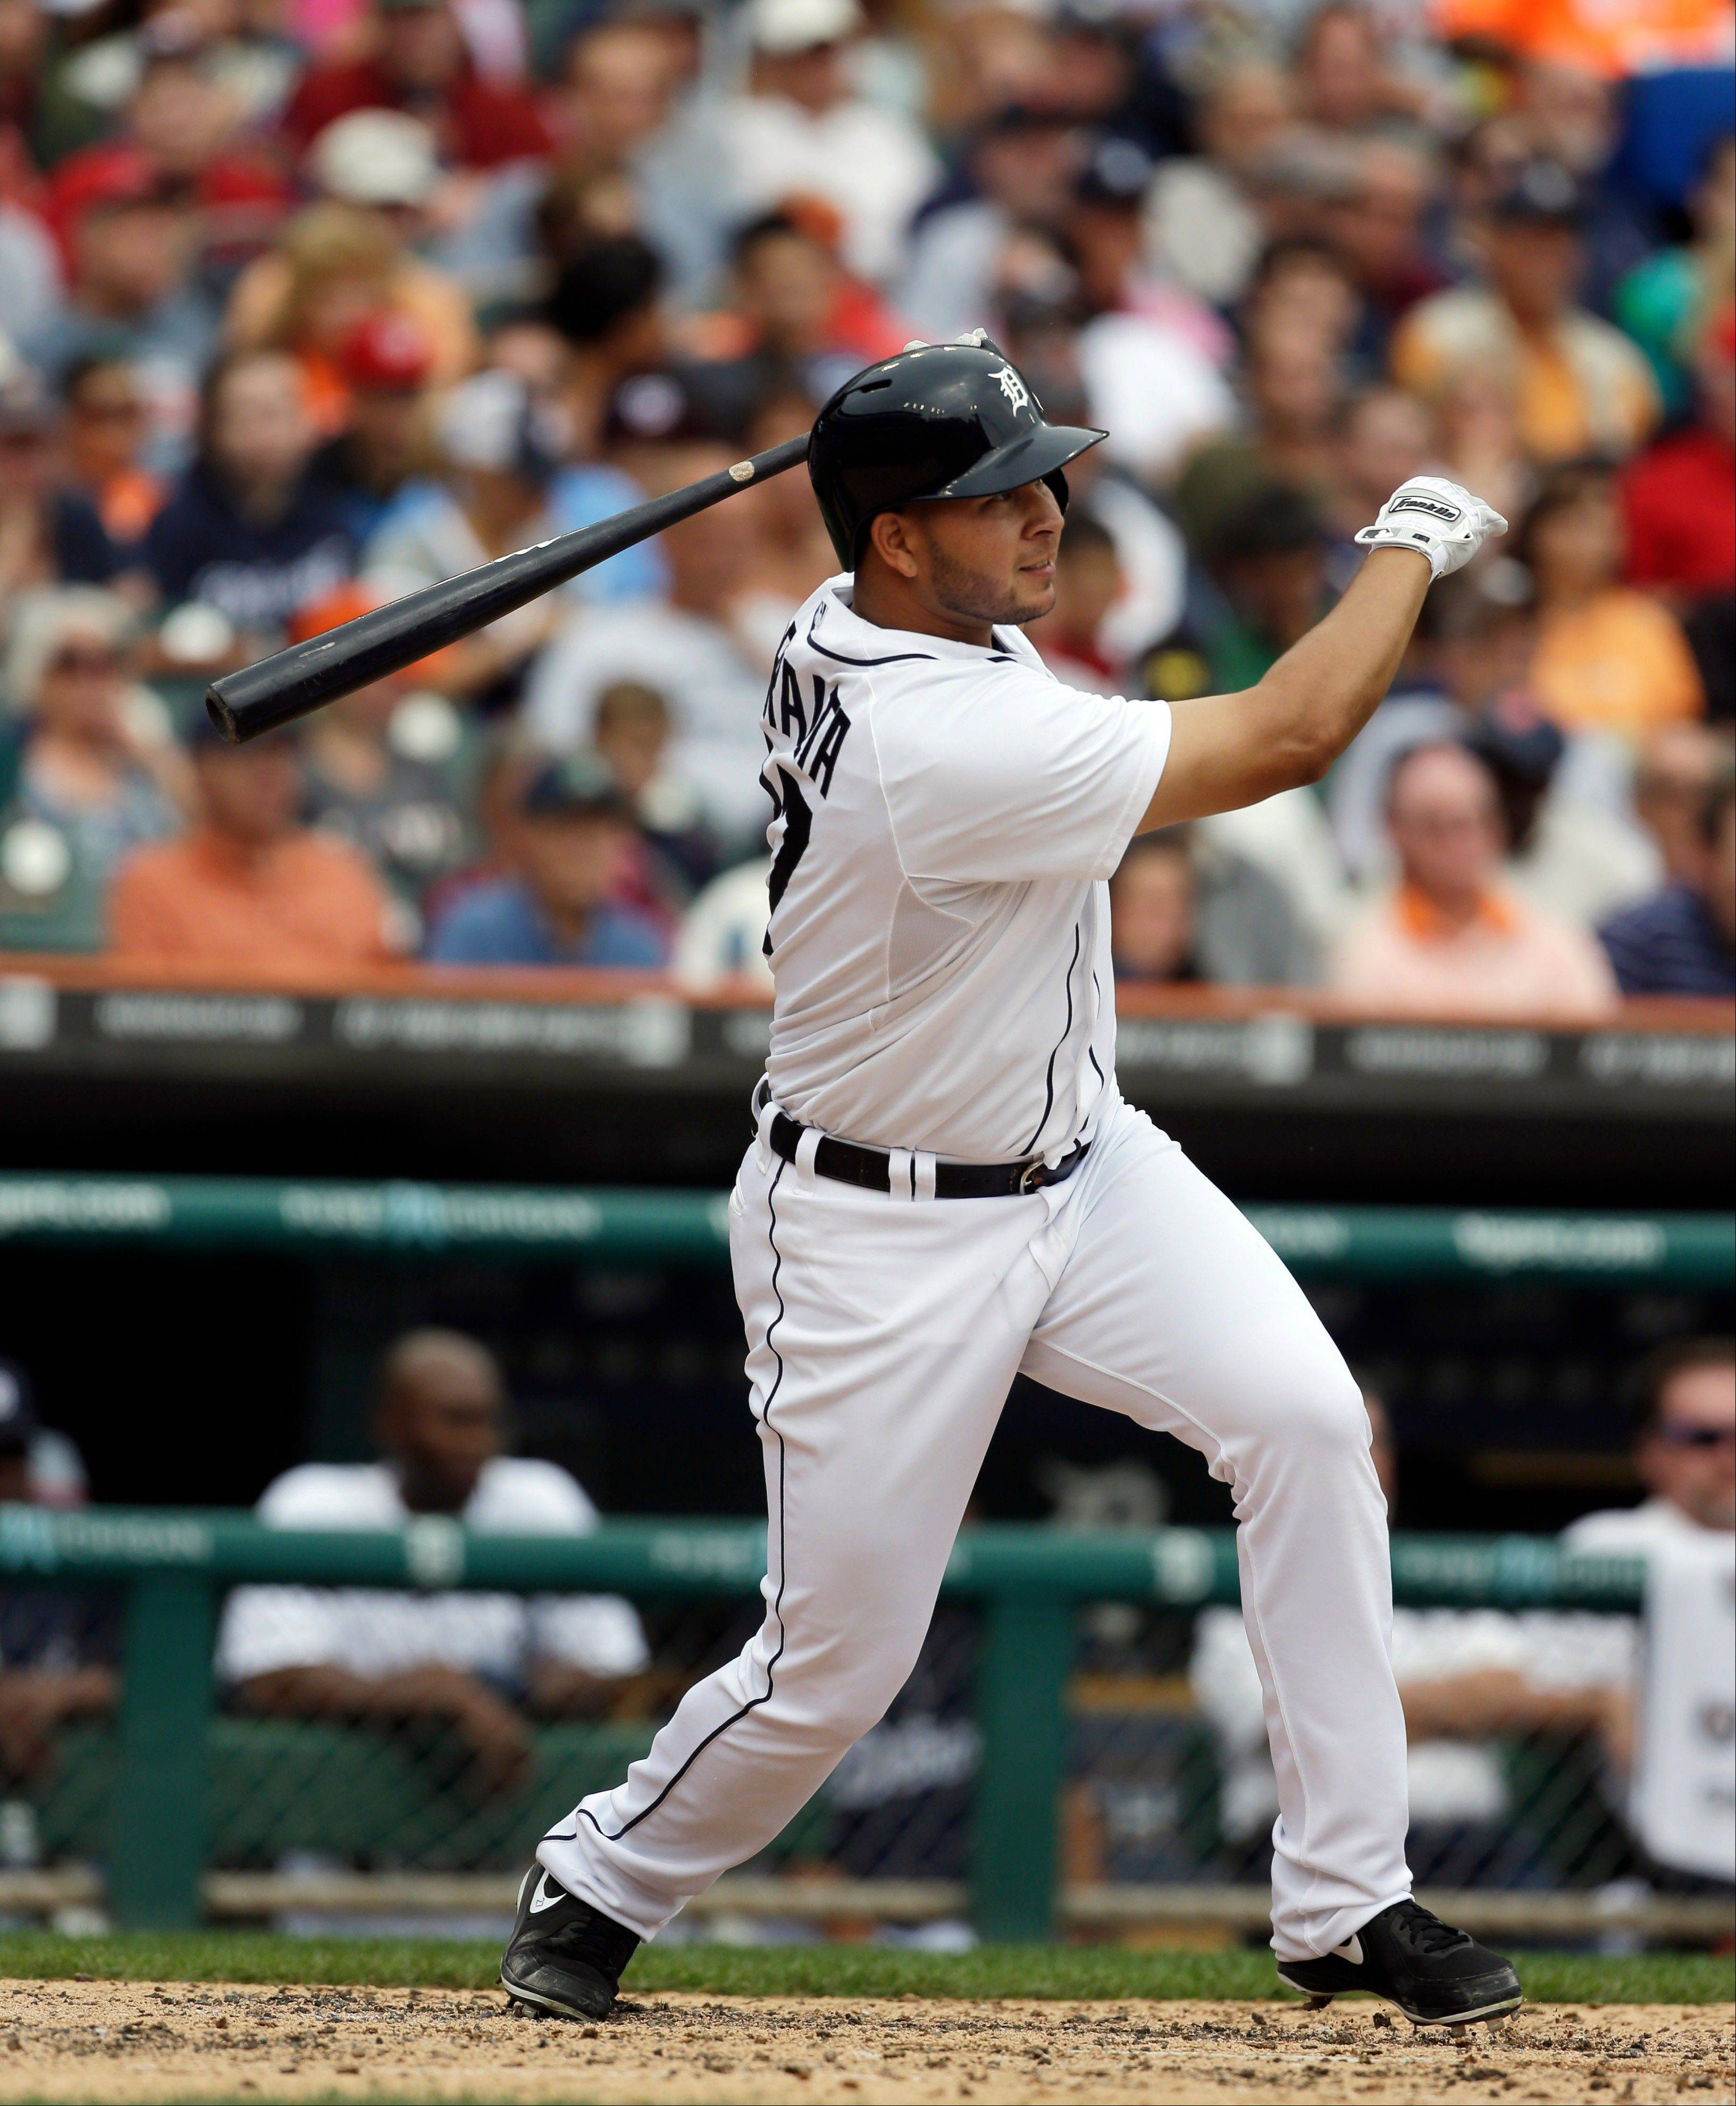 Detroit Tigers shortstop Jhonny Peralta, 31, made his second All-Star team this year, and his 50-game suspension announced Monday will make things tougher for the Tigers as they try to outlast Cleveland and win their third straight AL Central title. Peralta is batting .305 with 11 home runs and 54 RBIs. Salary lost: $1,639,344.